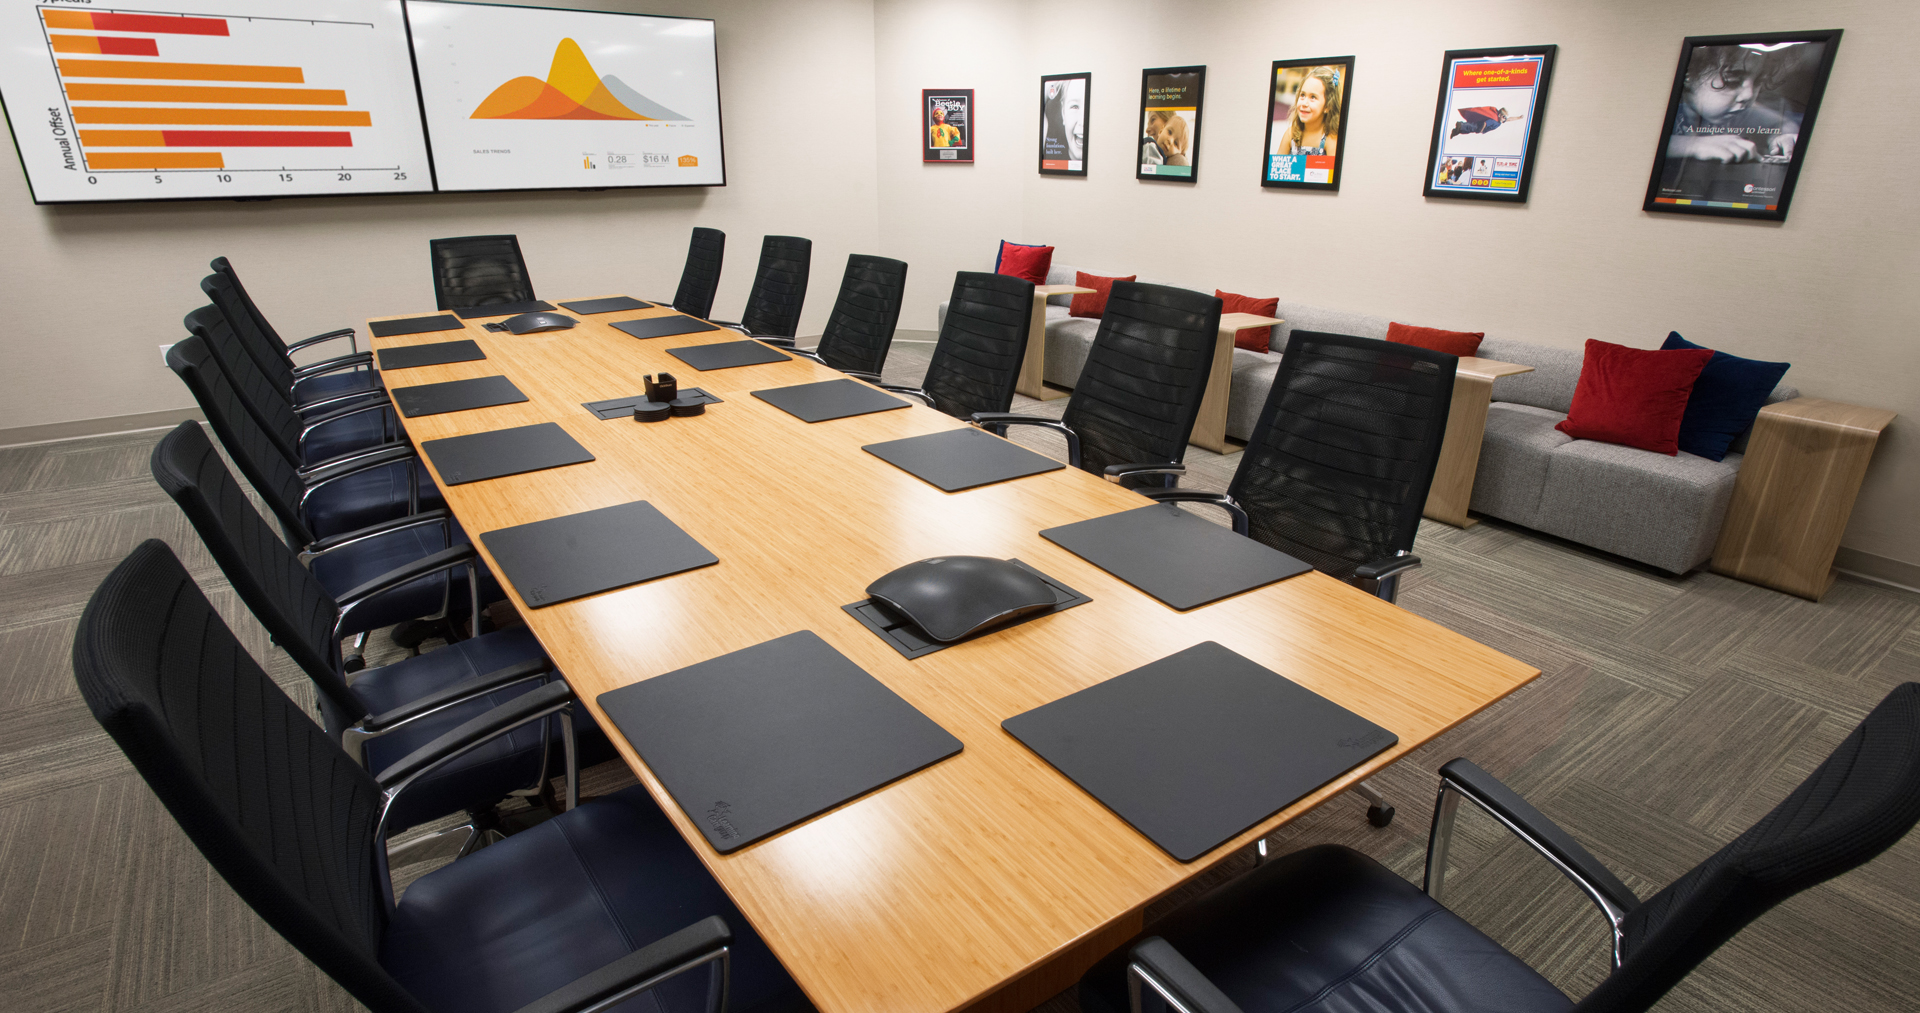 NBS.LCG.2017.003_Learning_Care_Conference_Room_1920x